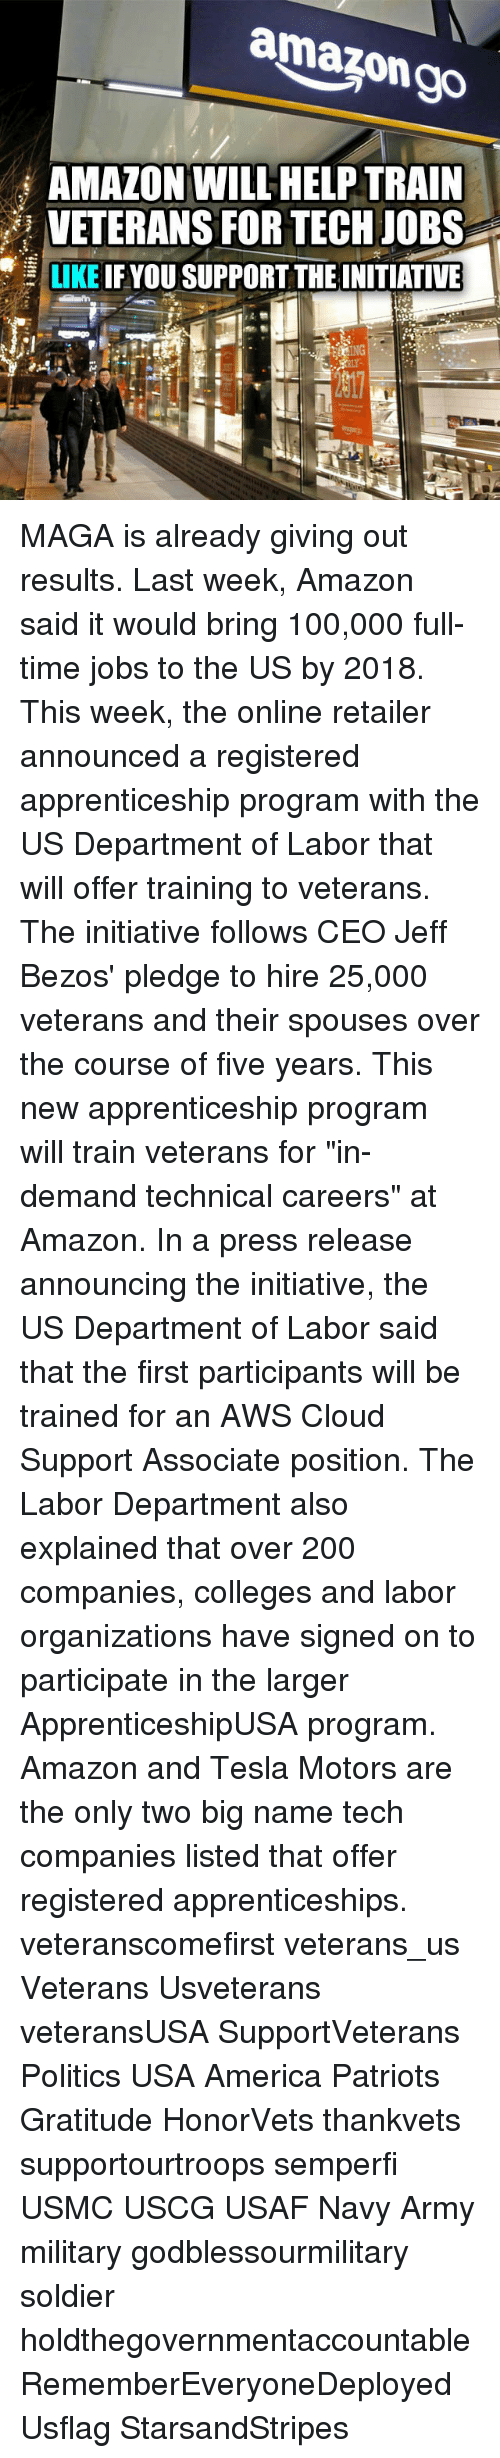 """Initialism: amazon go  i AMAZON WILL HELP TRAIN  VETERANS FOR TECH JOBS  LIKE  IF YOU SUPPORT THEINITIATIVE  ING MAGA is already giving out results. Last week, Amazon said it would bring 100,000 full-time jobs to the US by 2018. This week, the online retailer announced a registered apprenticeship program with the US Department of Labor that will offer training to veterans. The initiative follows CEO Jeff Bezos' pledge to hire 25,000 veterans and their spouses over the course of five years. This new apprenticeship program will train veterans for """"in-demand technical careers"""" at Amazon. In a press release announcing the initiative, the US Department of Labor said that the first participants will be trained for an AWS Cloud Support Associate position. The Labor Department also explained that over 200 companies, colleges and labor organizations have signed on to participate in the larger ApprenticeshipUSA program. Amazon and Tesla Motors are the only two big name tech companies listed that offer registered apprenticeships. veteranscomefirst veterans_us Veterans Usveterans veteransUSA SupportVeterans Politics USA America Patriots Gratitude HonorVets thankvets supportourtroops semperfi USMC USCG USAF Navy Army military godblessourmilitary soldier holdthegovernmentaccountable RememberEveryoneDeployed Usflag StarsandStripes"""